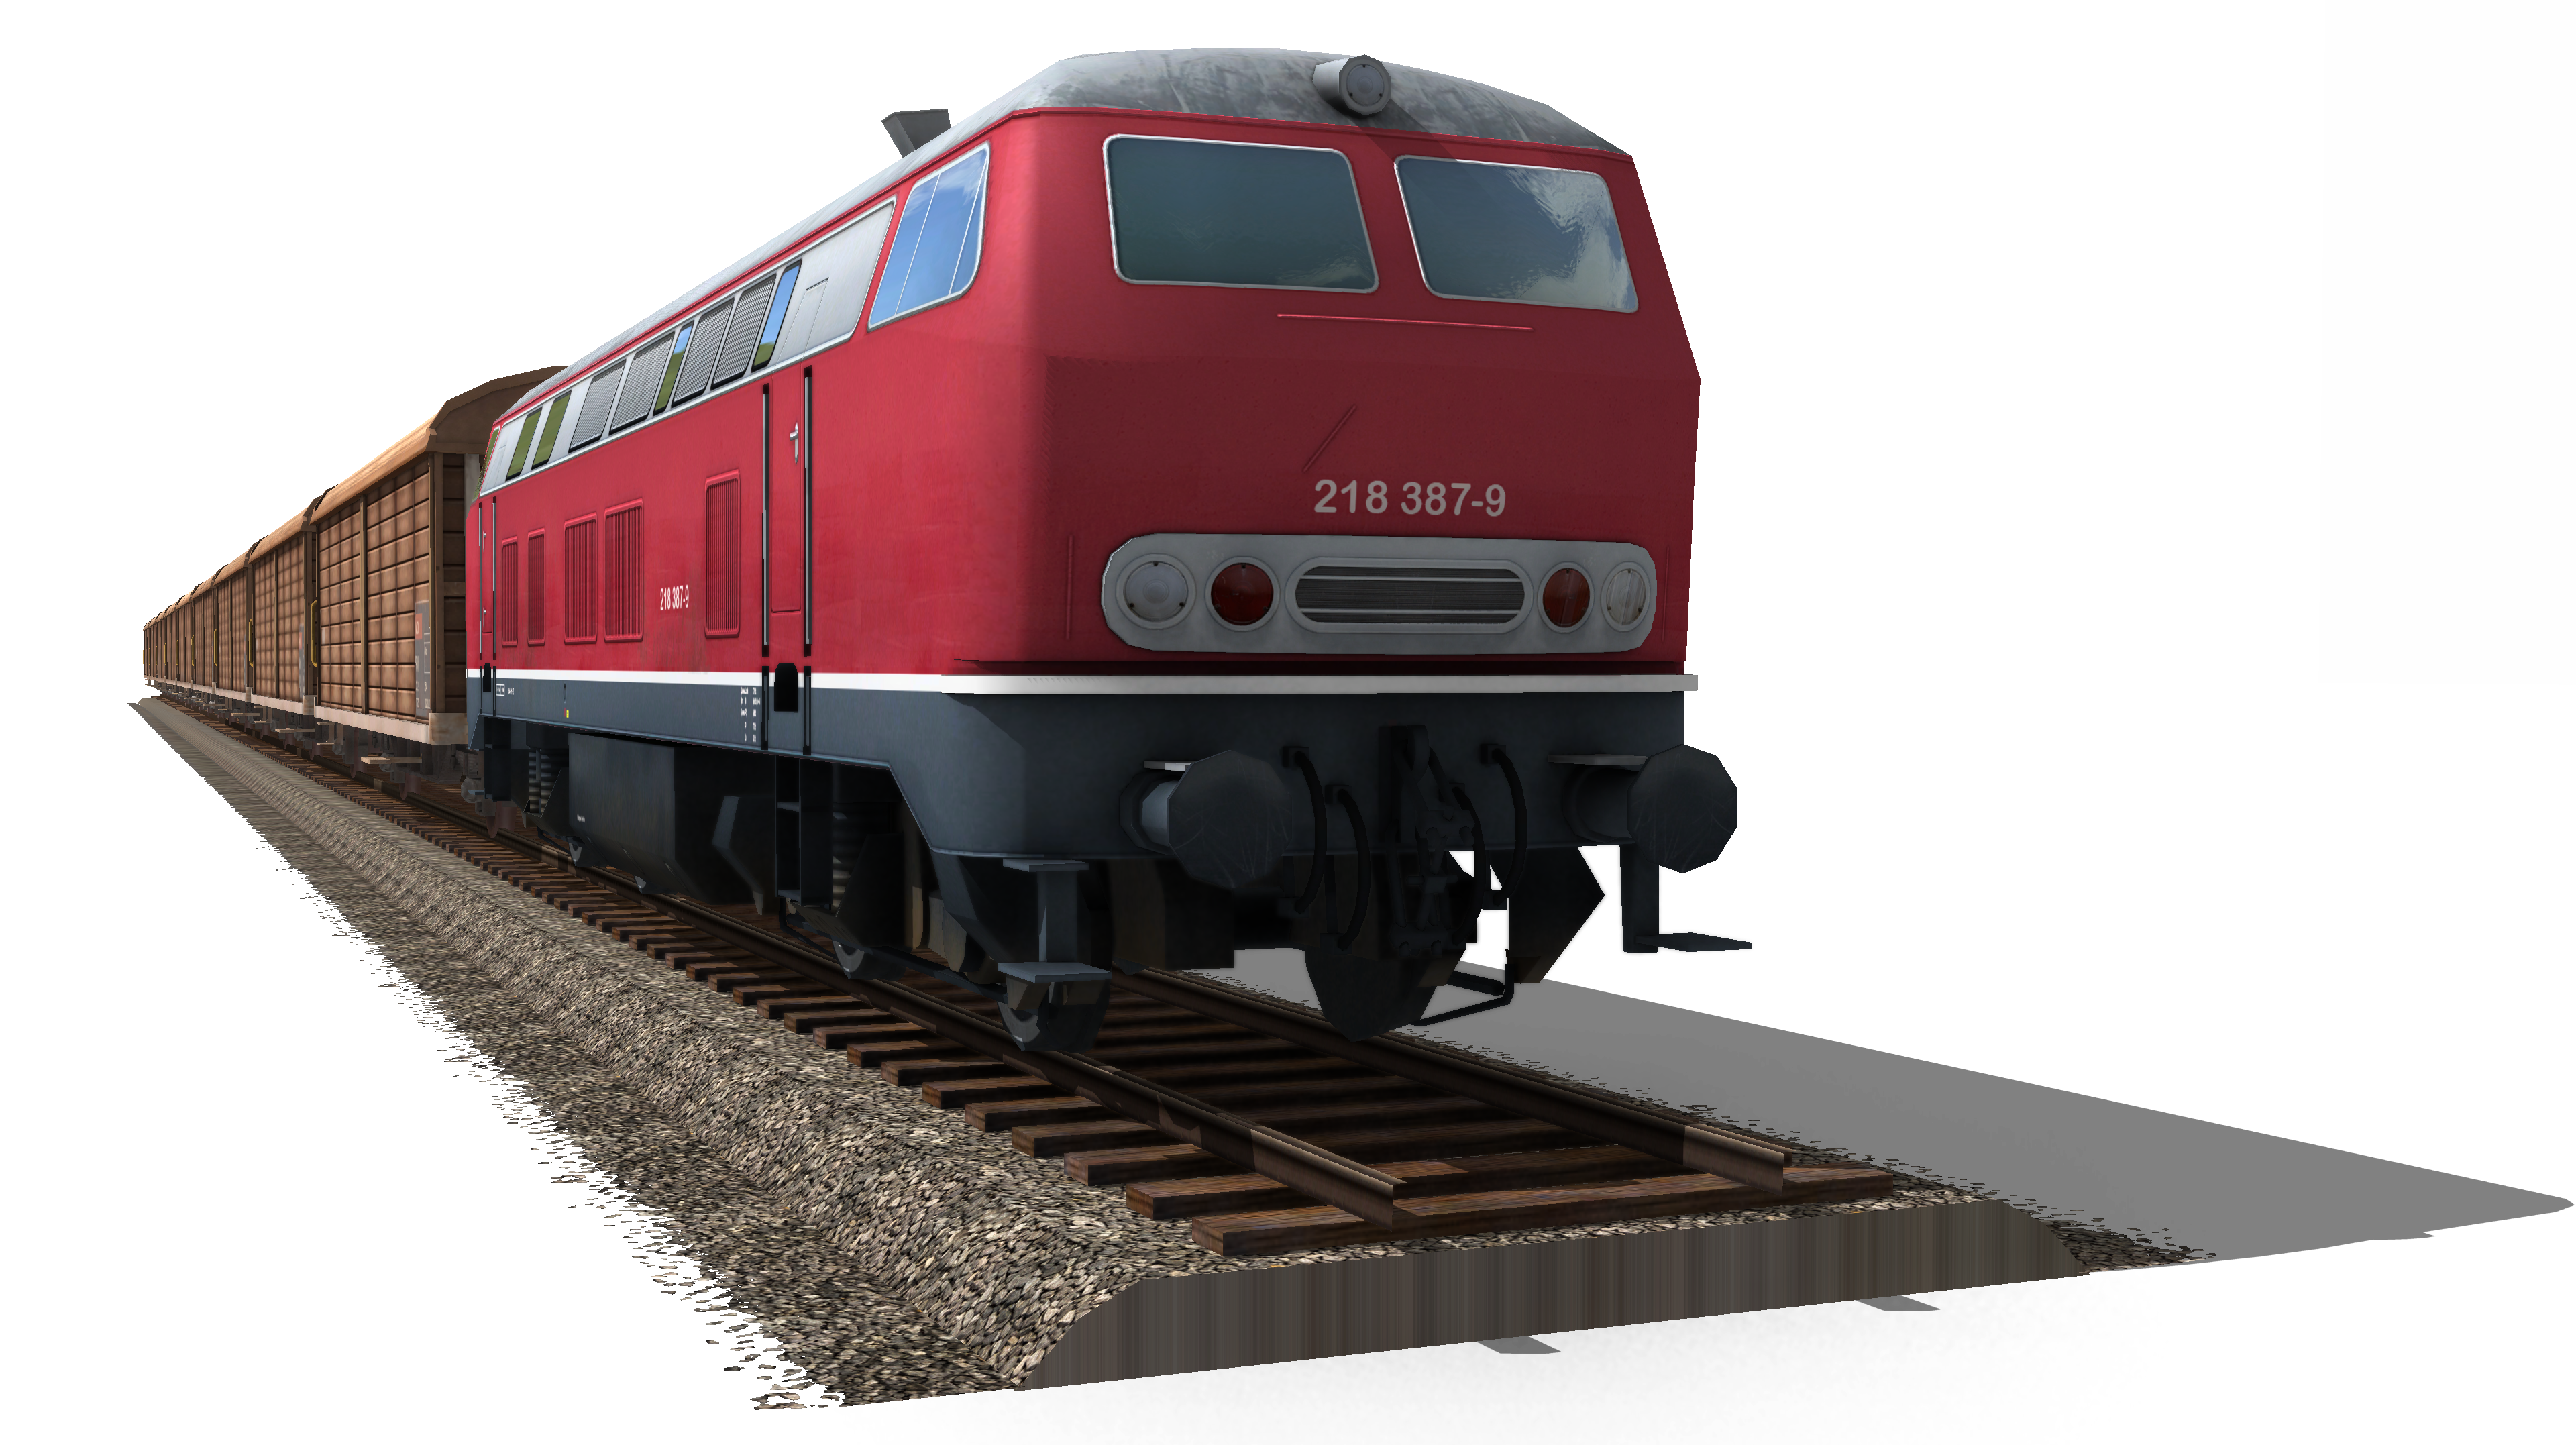 PNG Image Of Train - 48342